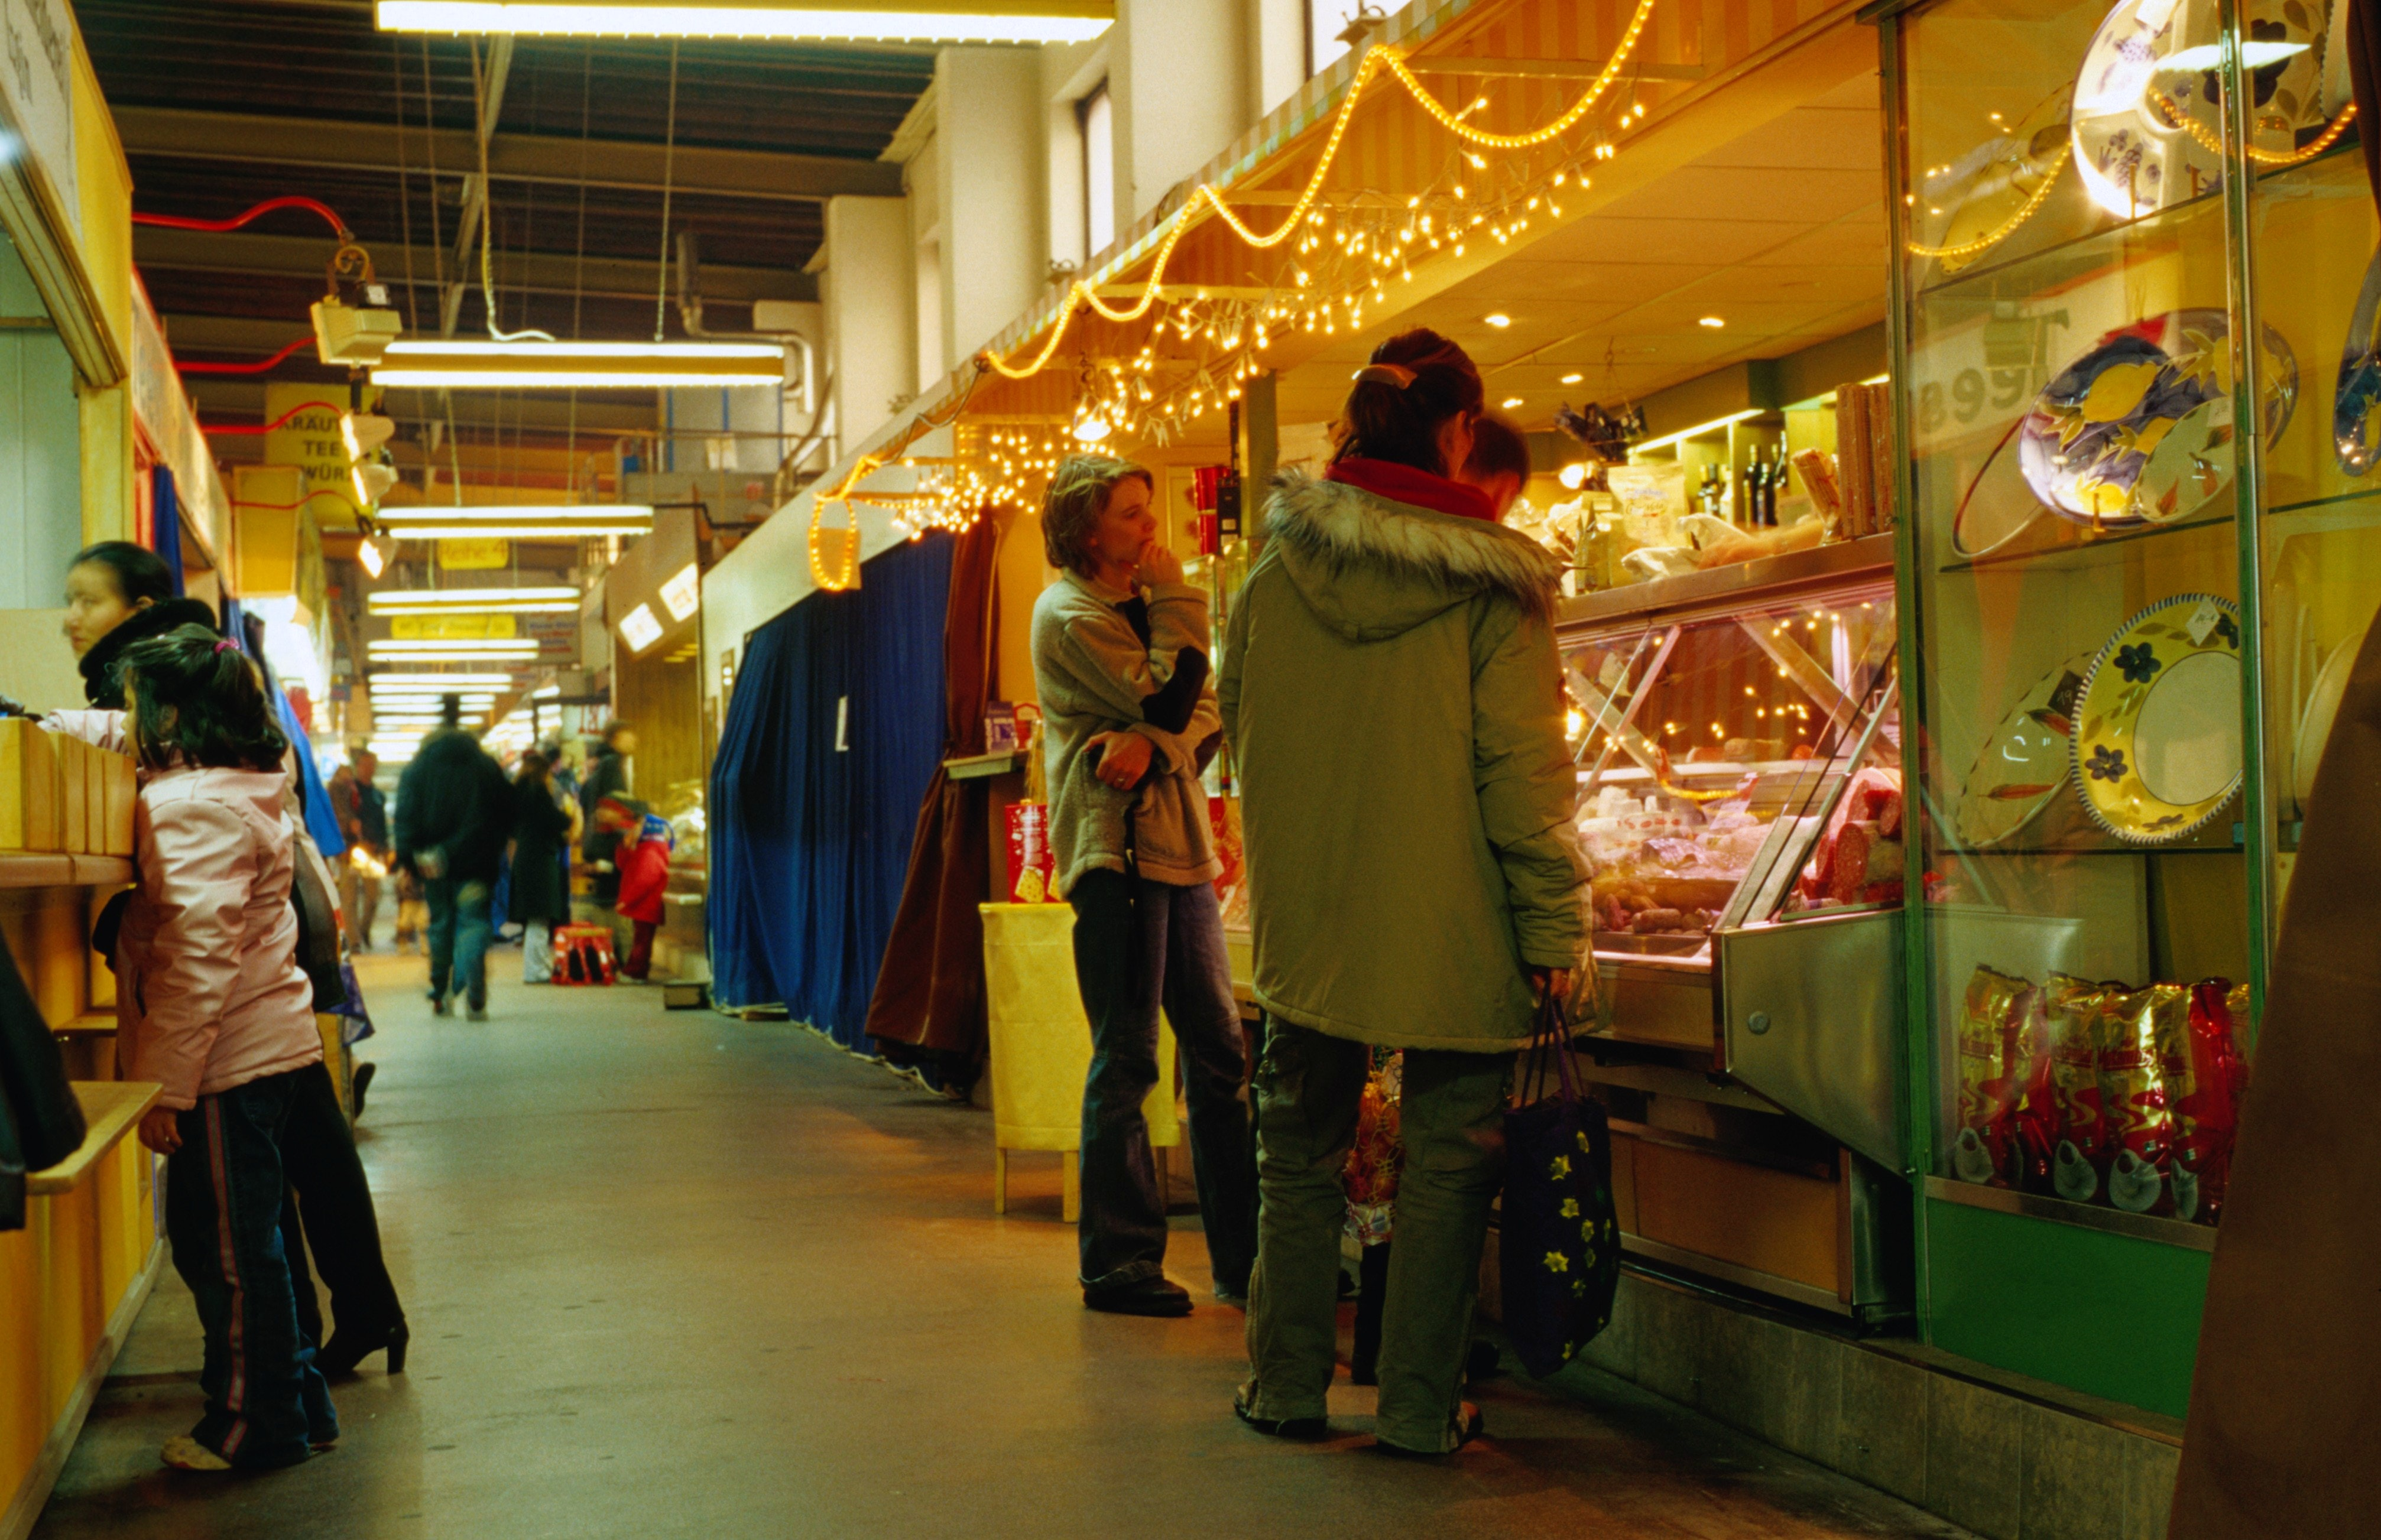 Markthalle Regensburg shopping in germany lonely planet